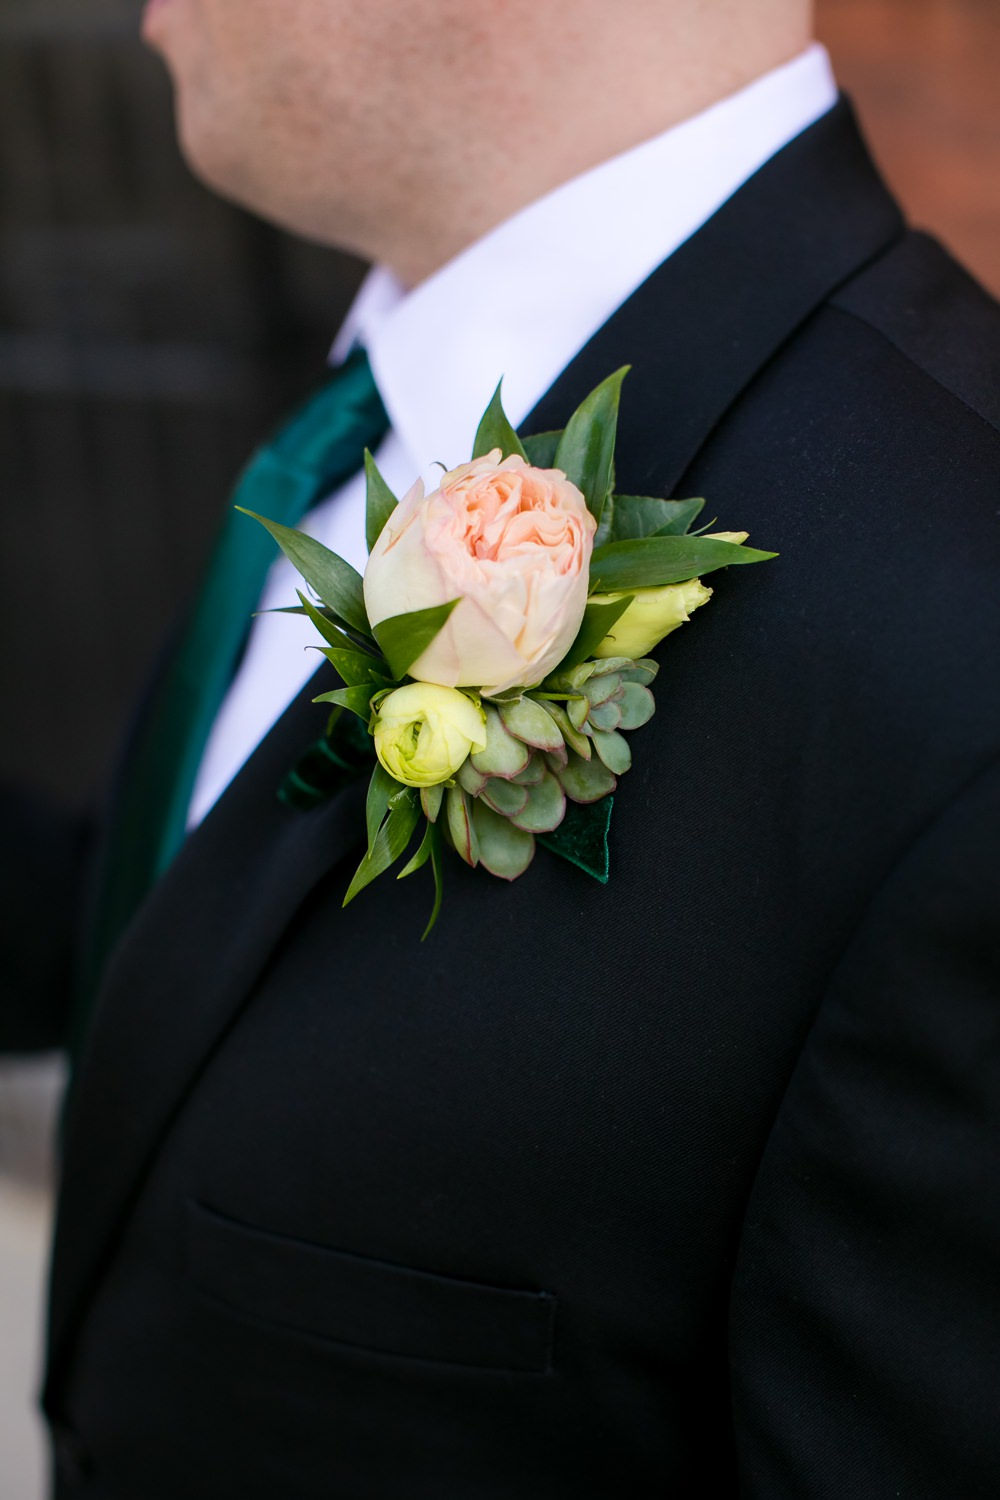 Groom Groomsmen Buttonhole Flowers Floral Minneapolis Wedding Jeannine Marie Photography